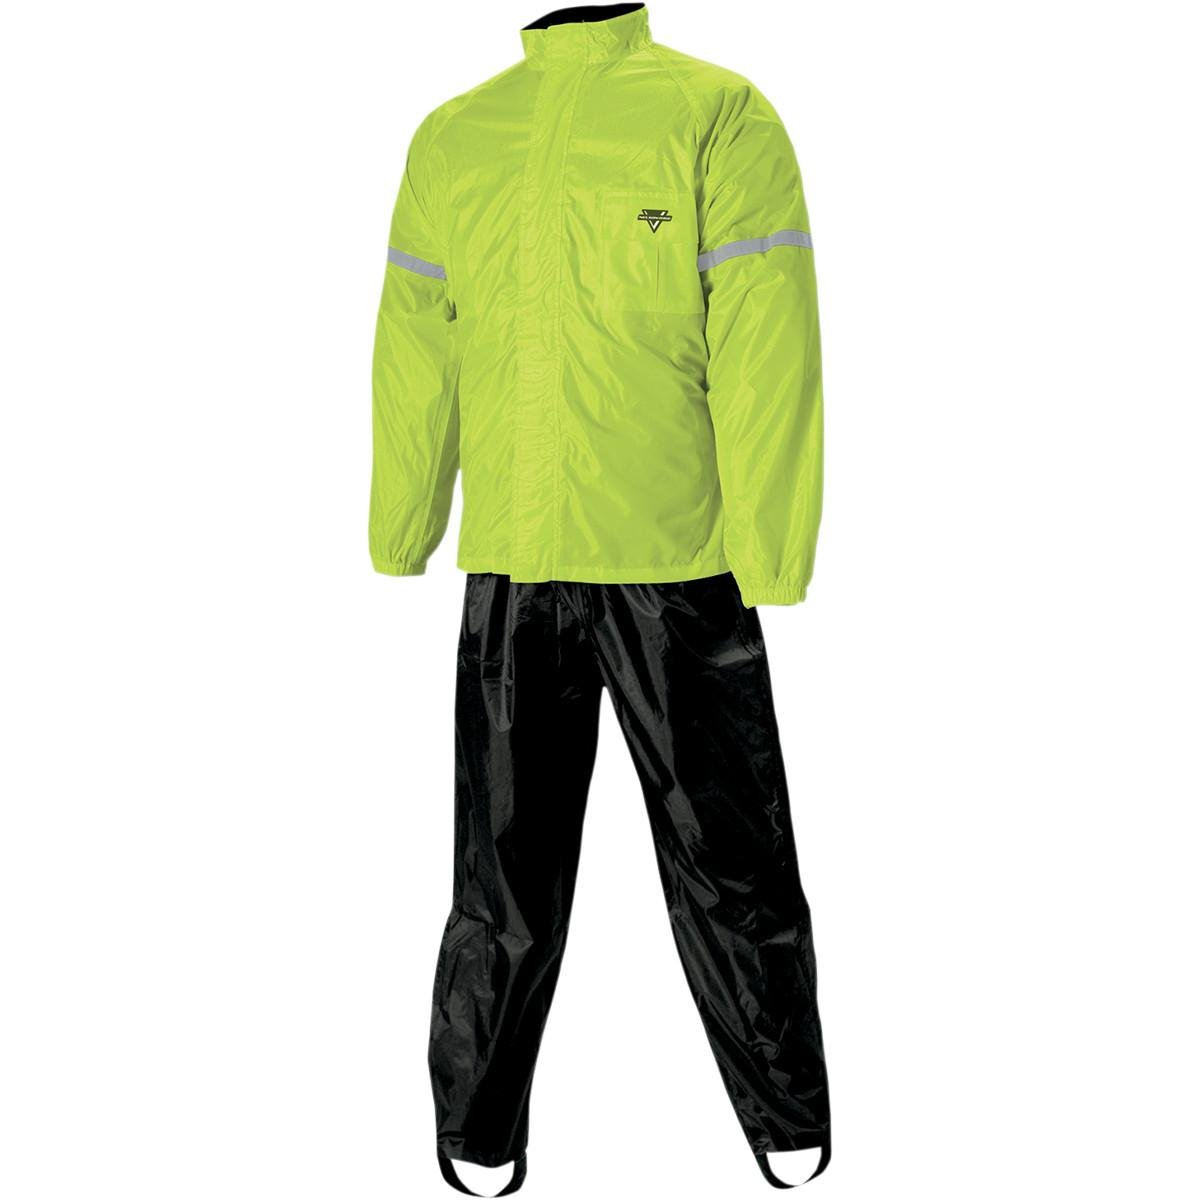 Nelson-Rigg WP-8000 Weatherpro Men's 2-Piece Sports Bike Motorcycle Rain Suits - Black/Hi-Visibility Yellow / Small